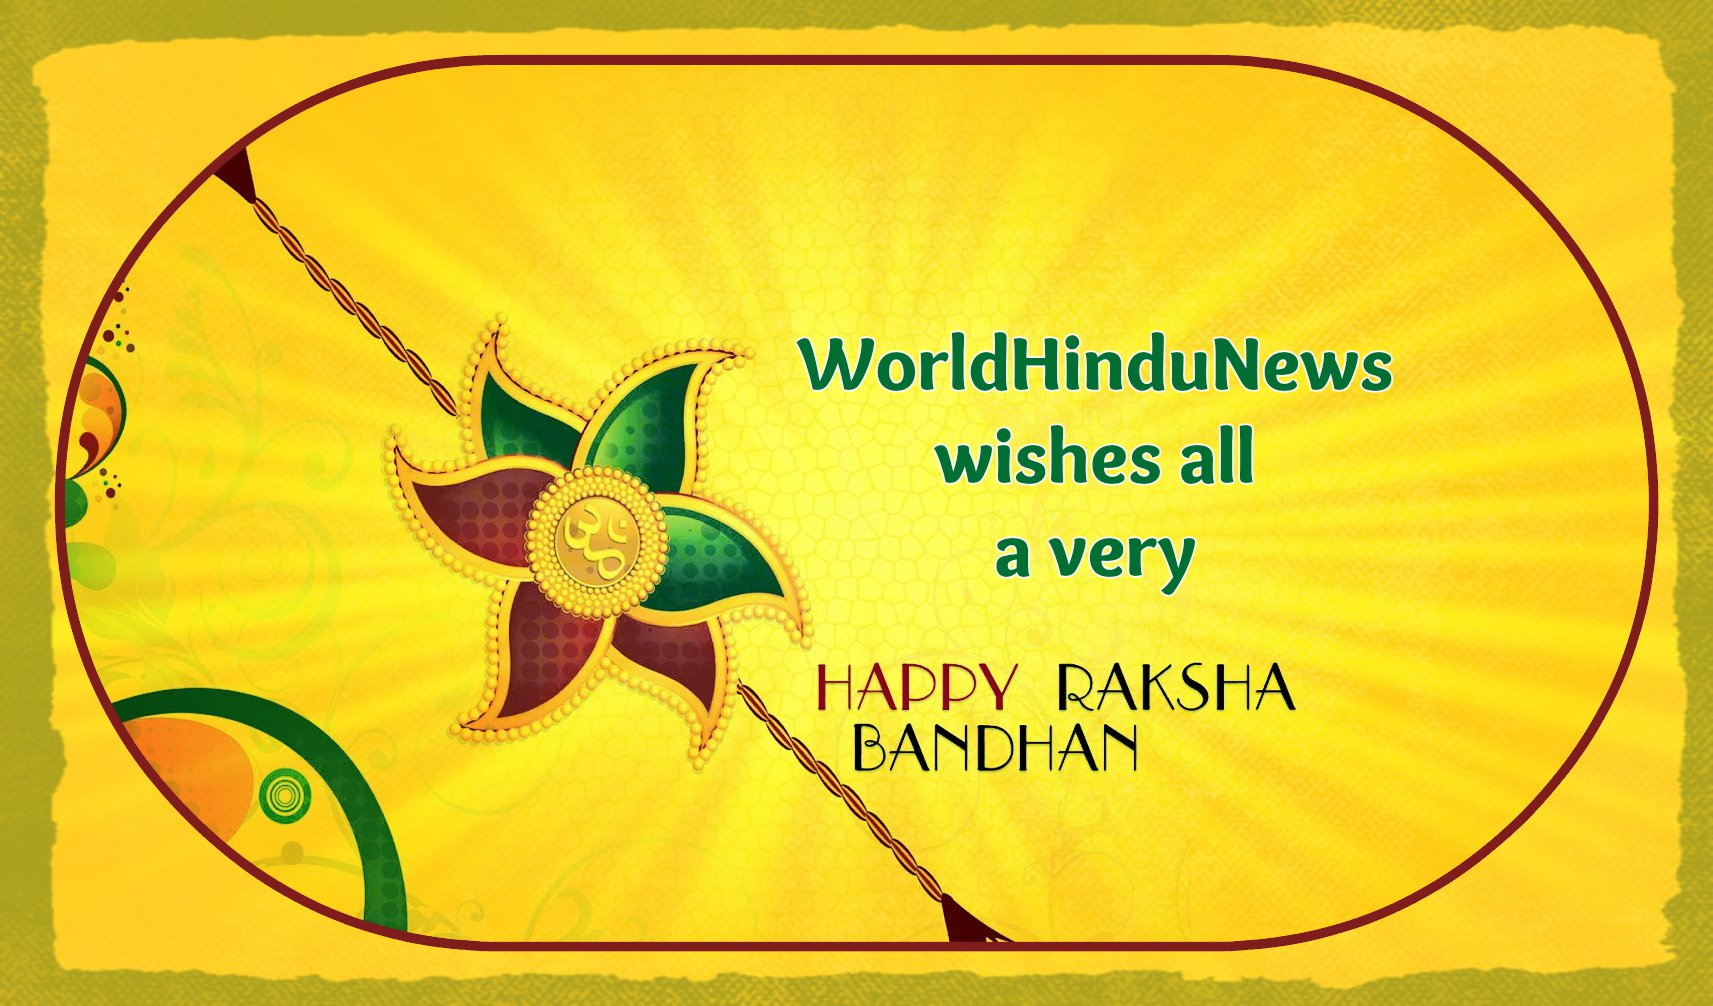 Raksha-Bandhan-Best-wallpapers-photos-2014